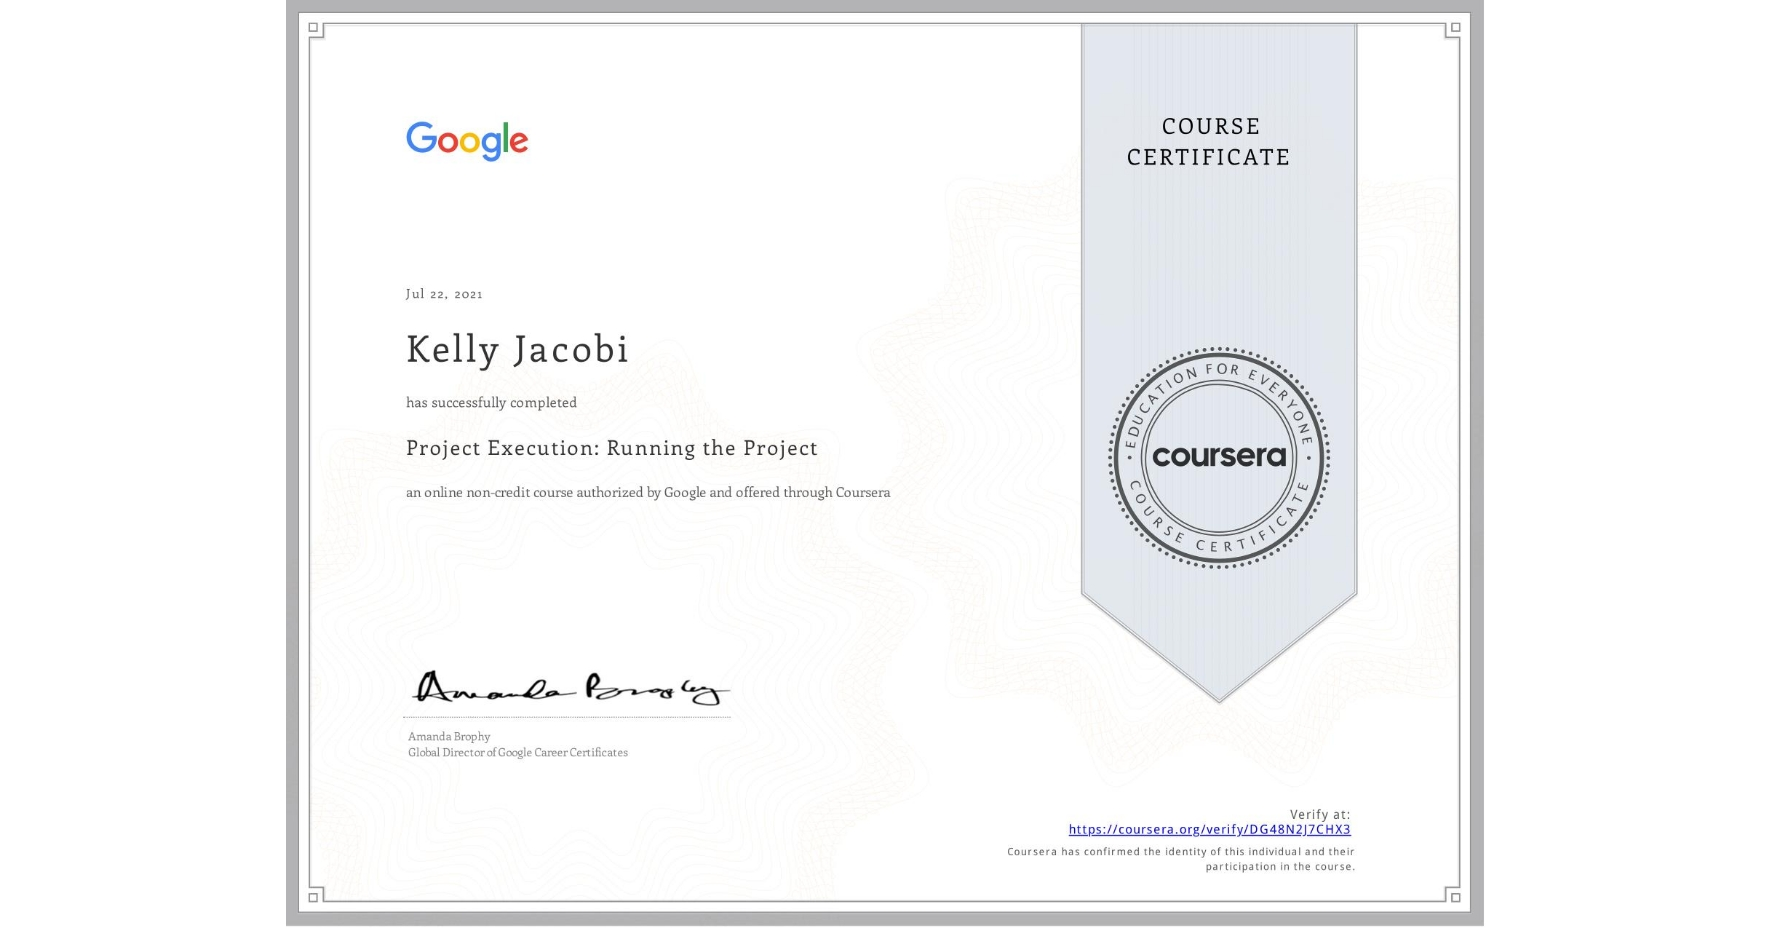 View certificate for Kelly Jacobi, Project Execution: Running the Project, an online non-credit course authorized by Google and offered through Coursera